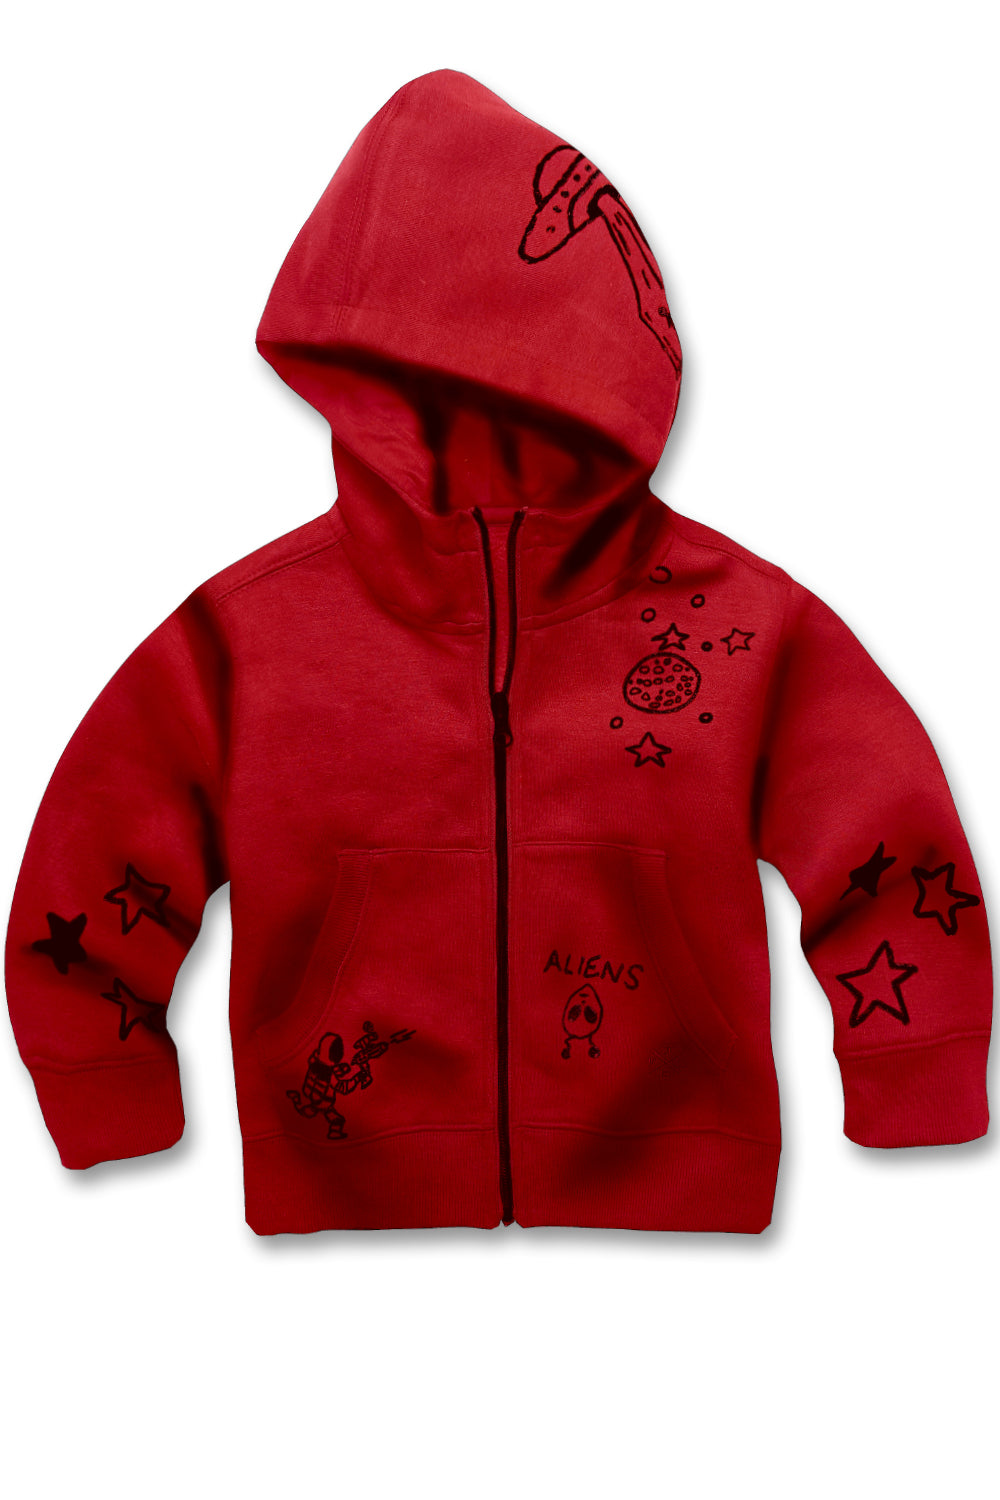 Jordan Craig - Kids Galaxy Zip Up Hoodie (Red)